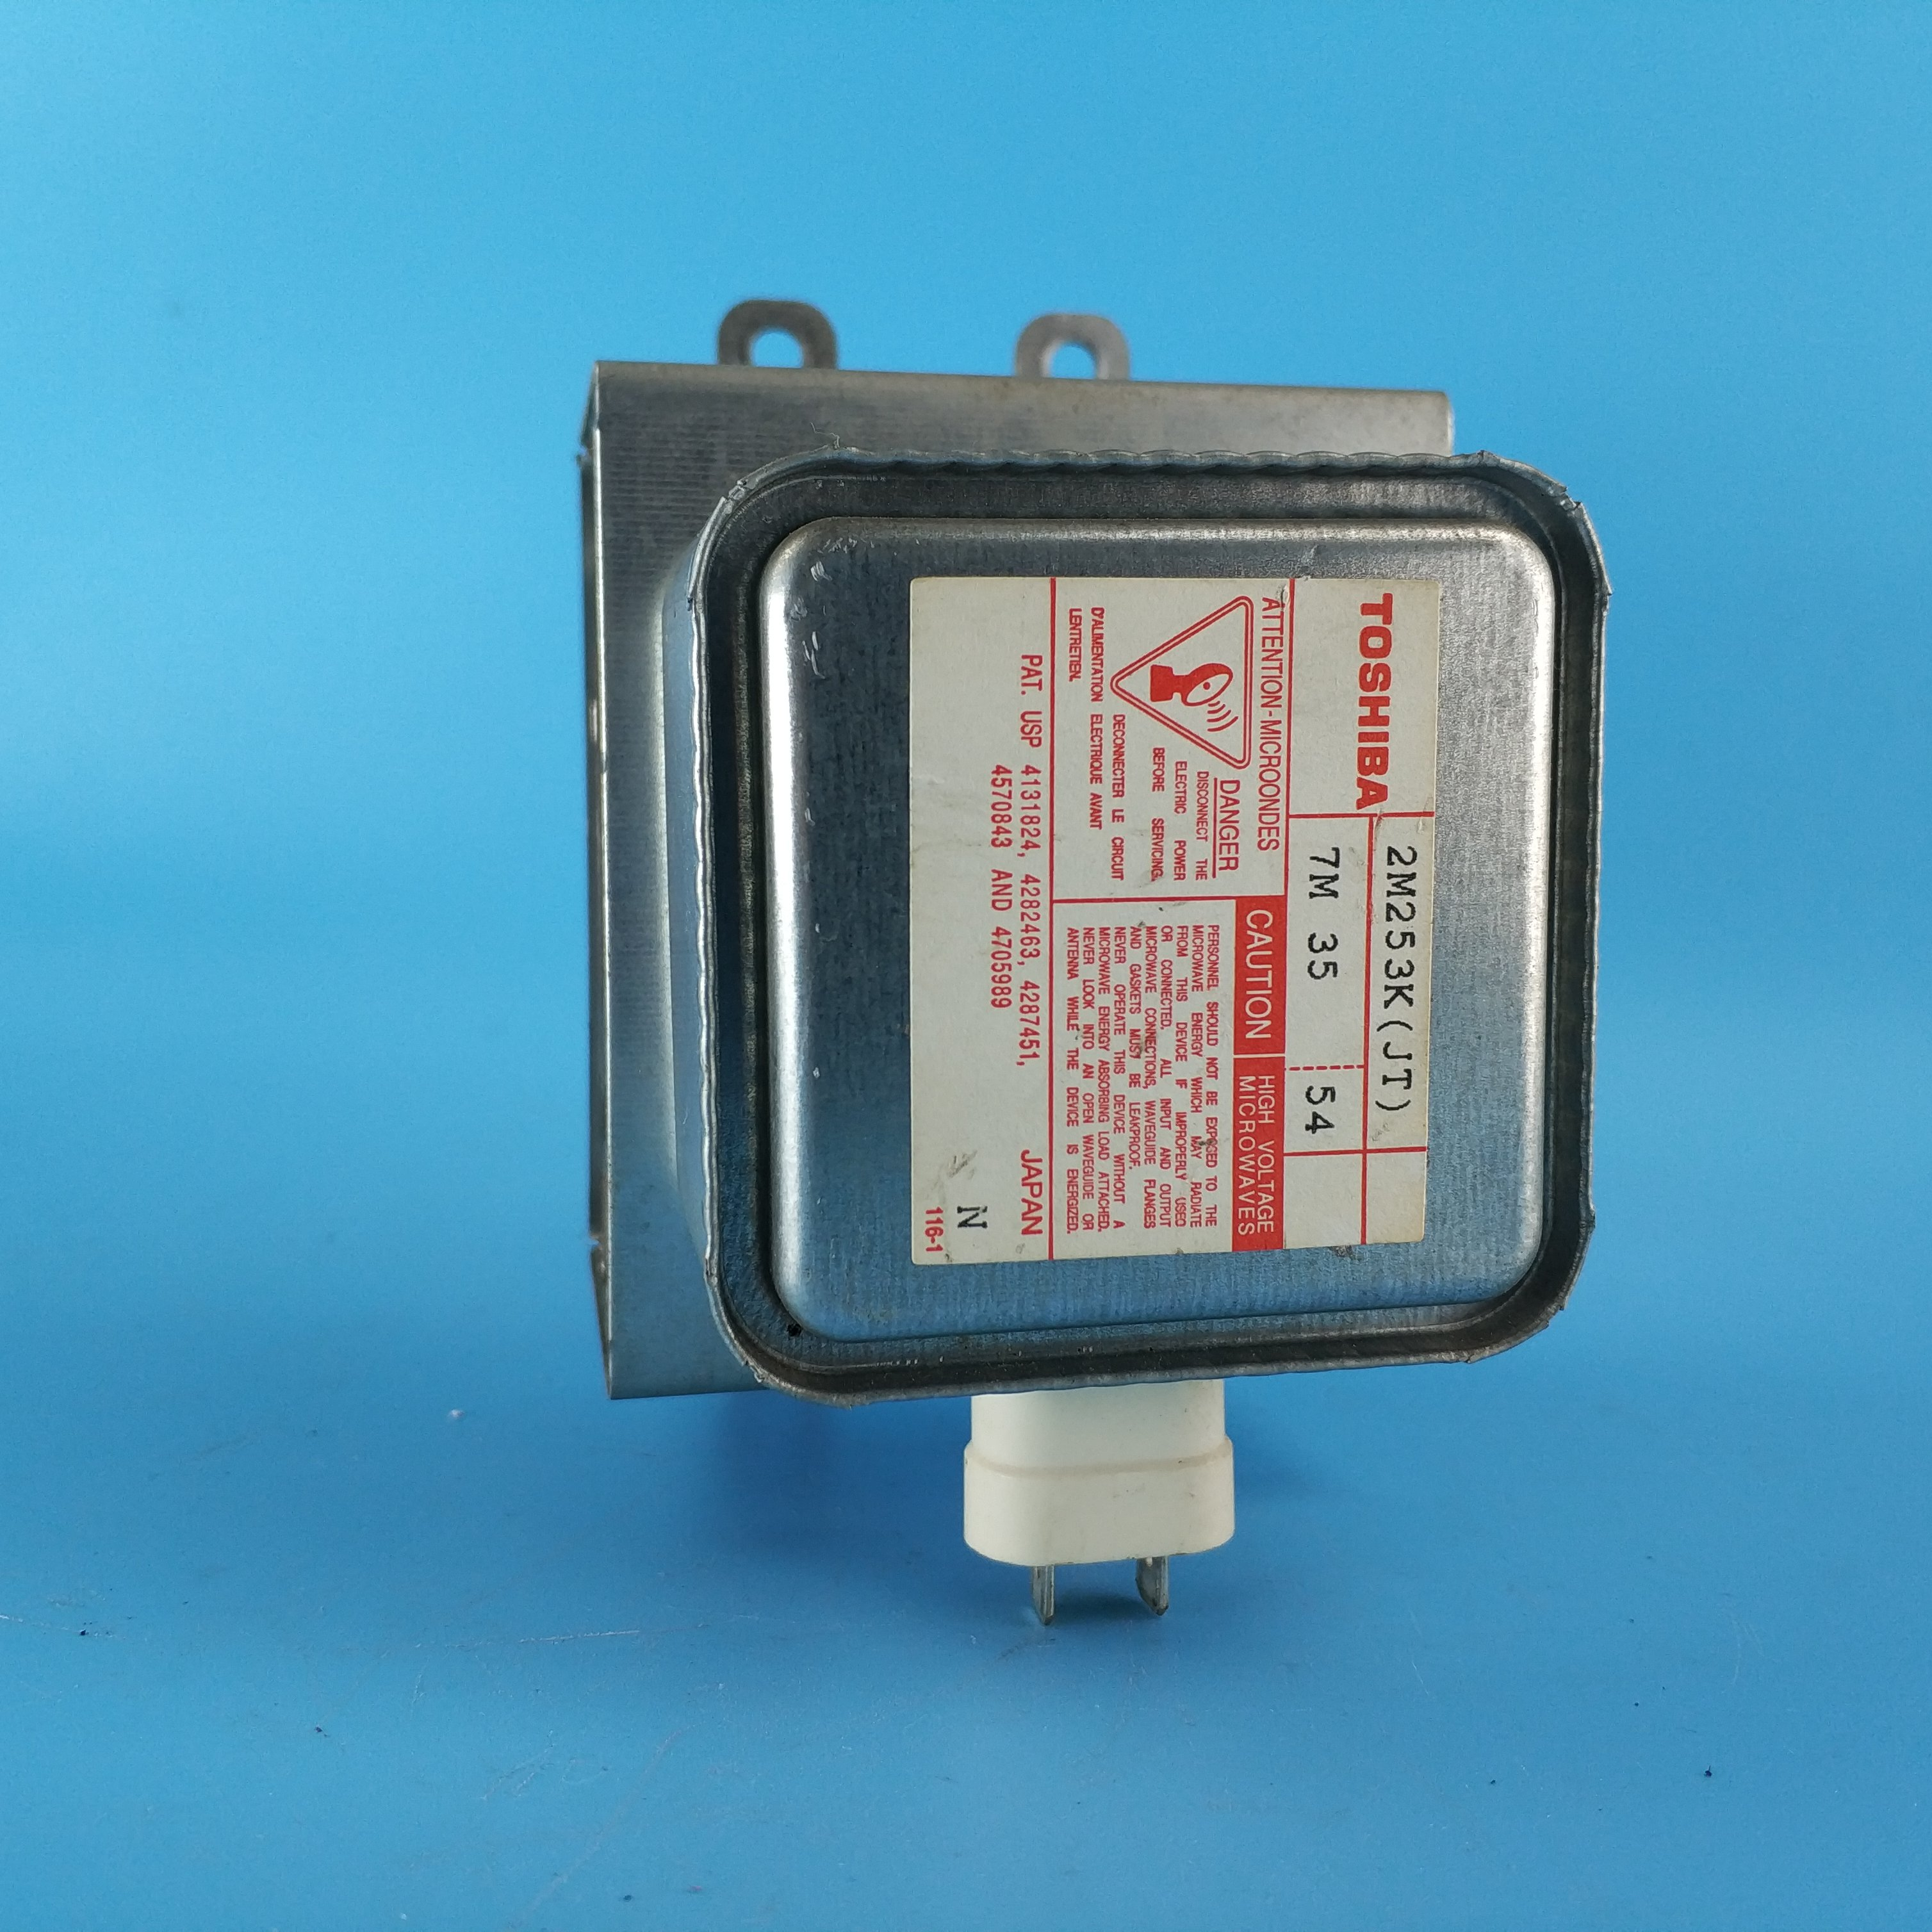 2M253K Microwave Oven Magnetron For 2M253K(JT) 2M253K(JT)GAL01